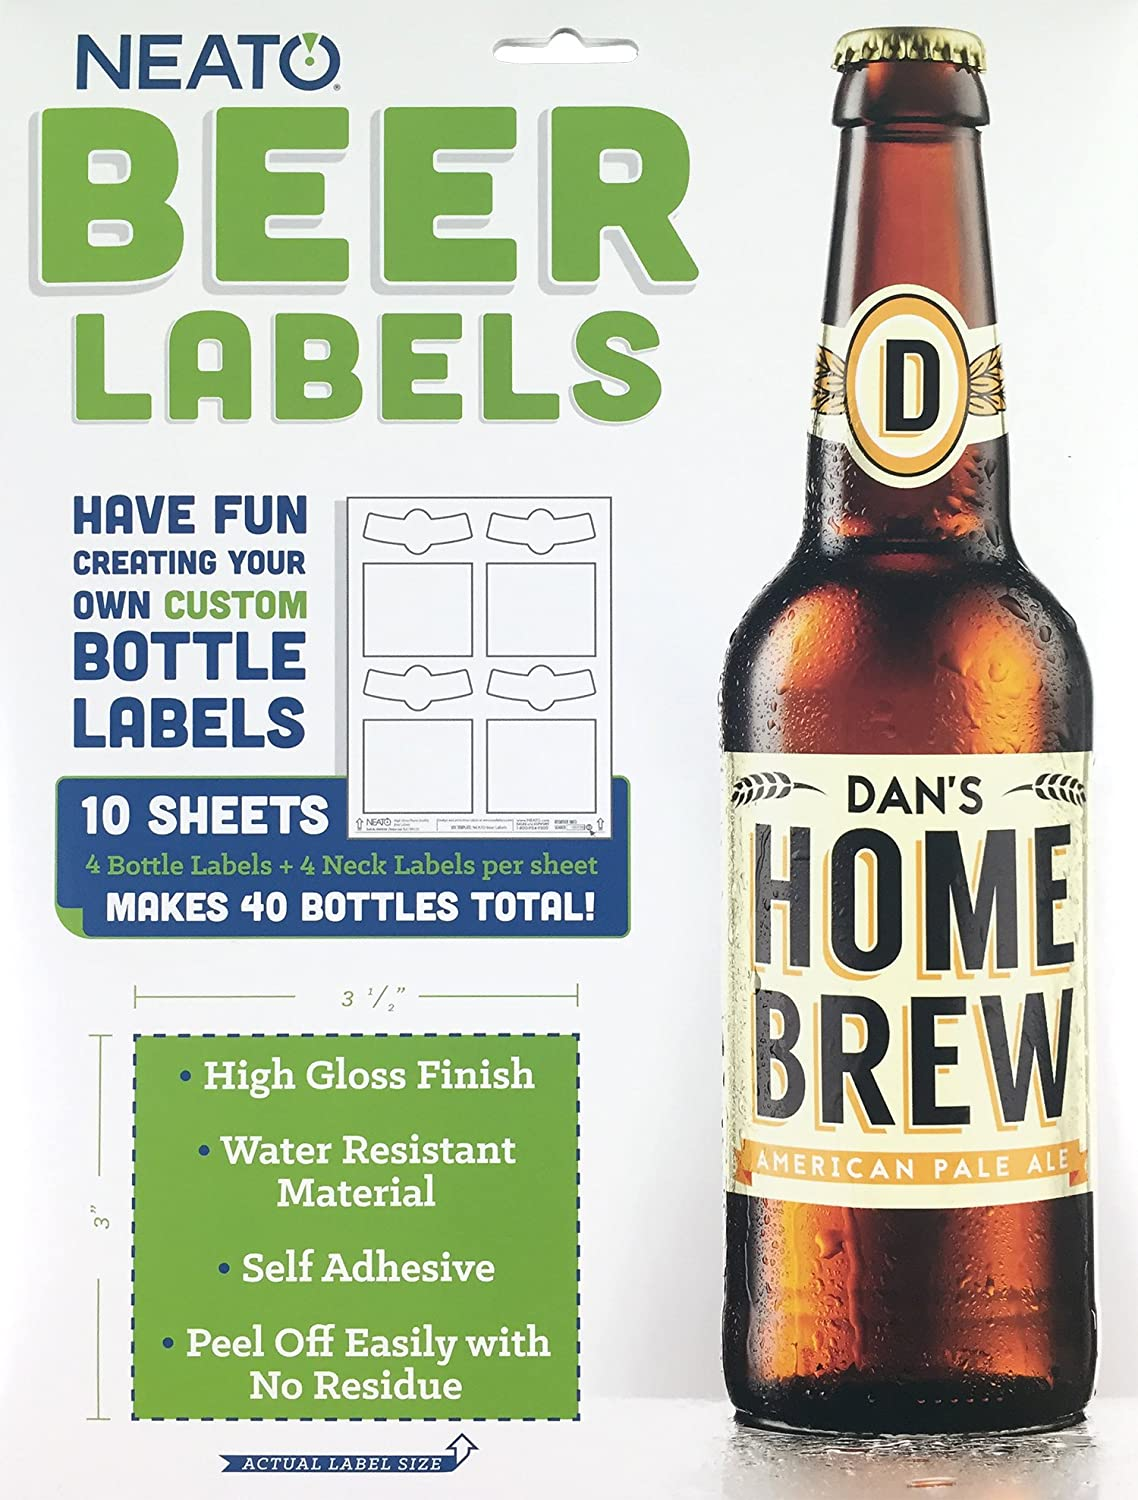 Neato Blank Beer Bottle Labels - 10 Sheets - 40 Total Labels - Water Resistant, Vinyl, Tear Free Labels for Inkjet Printers - Strong Adhesive - Includes Online Design Beer Label Software